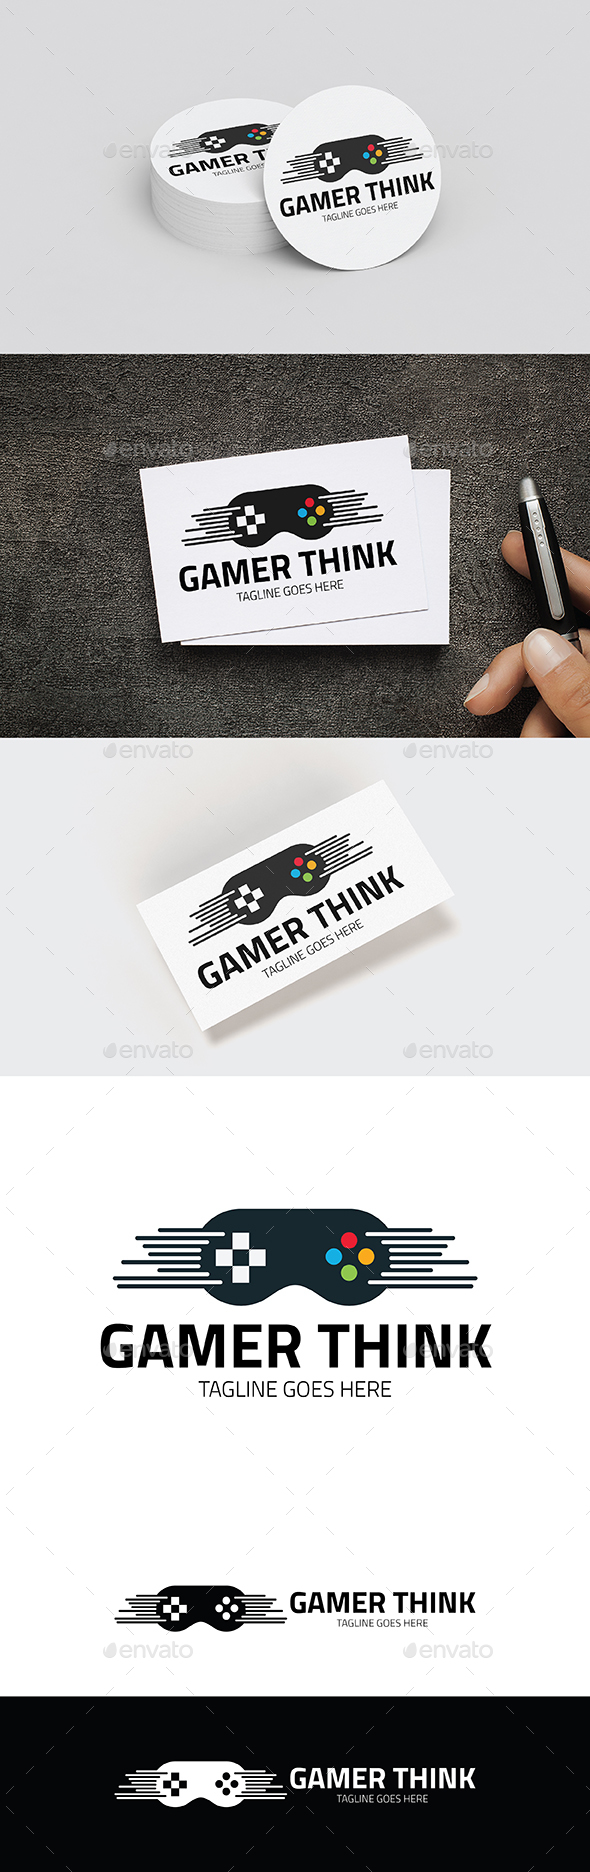 Gamer Think Logo